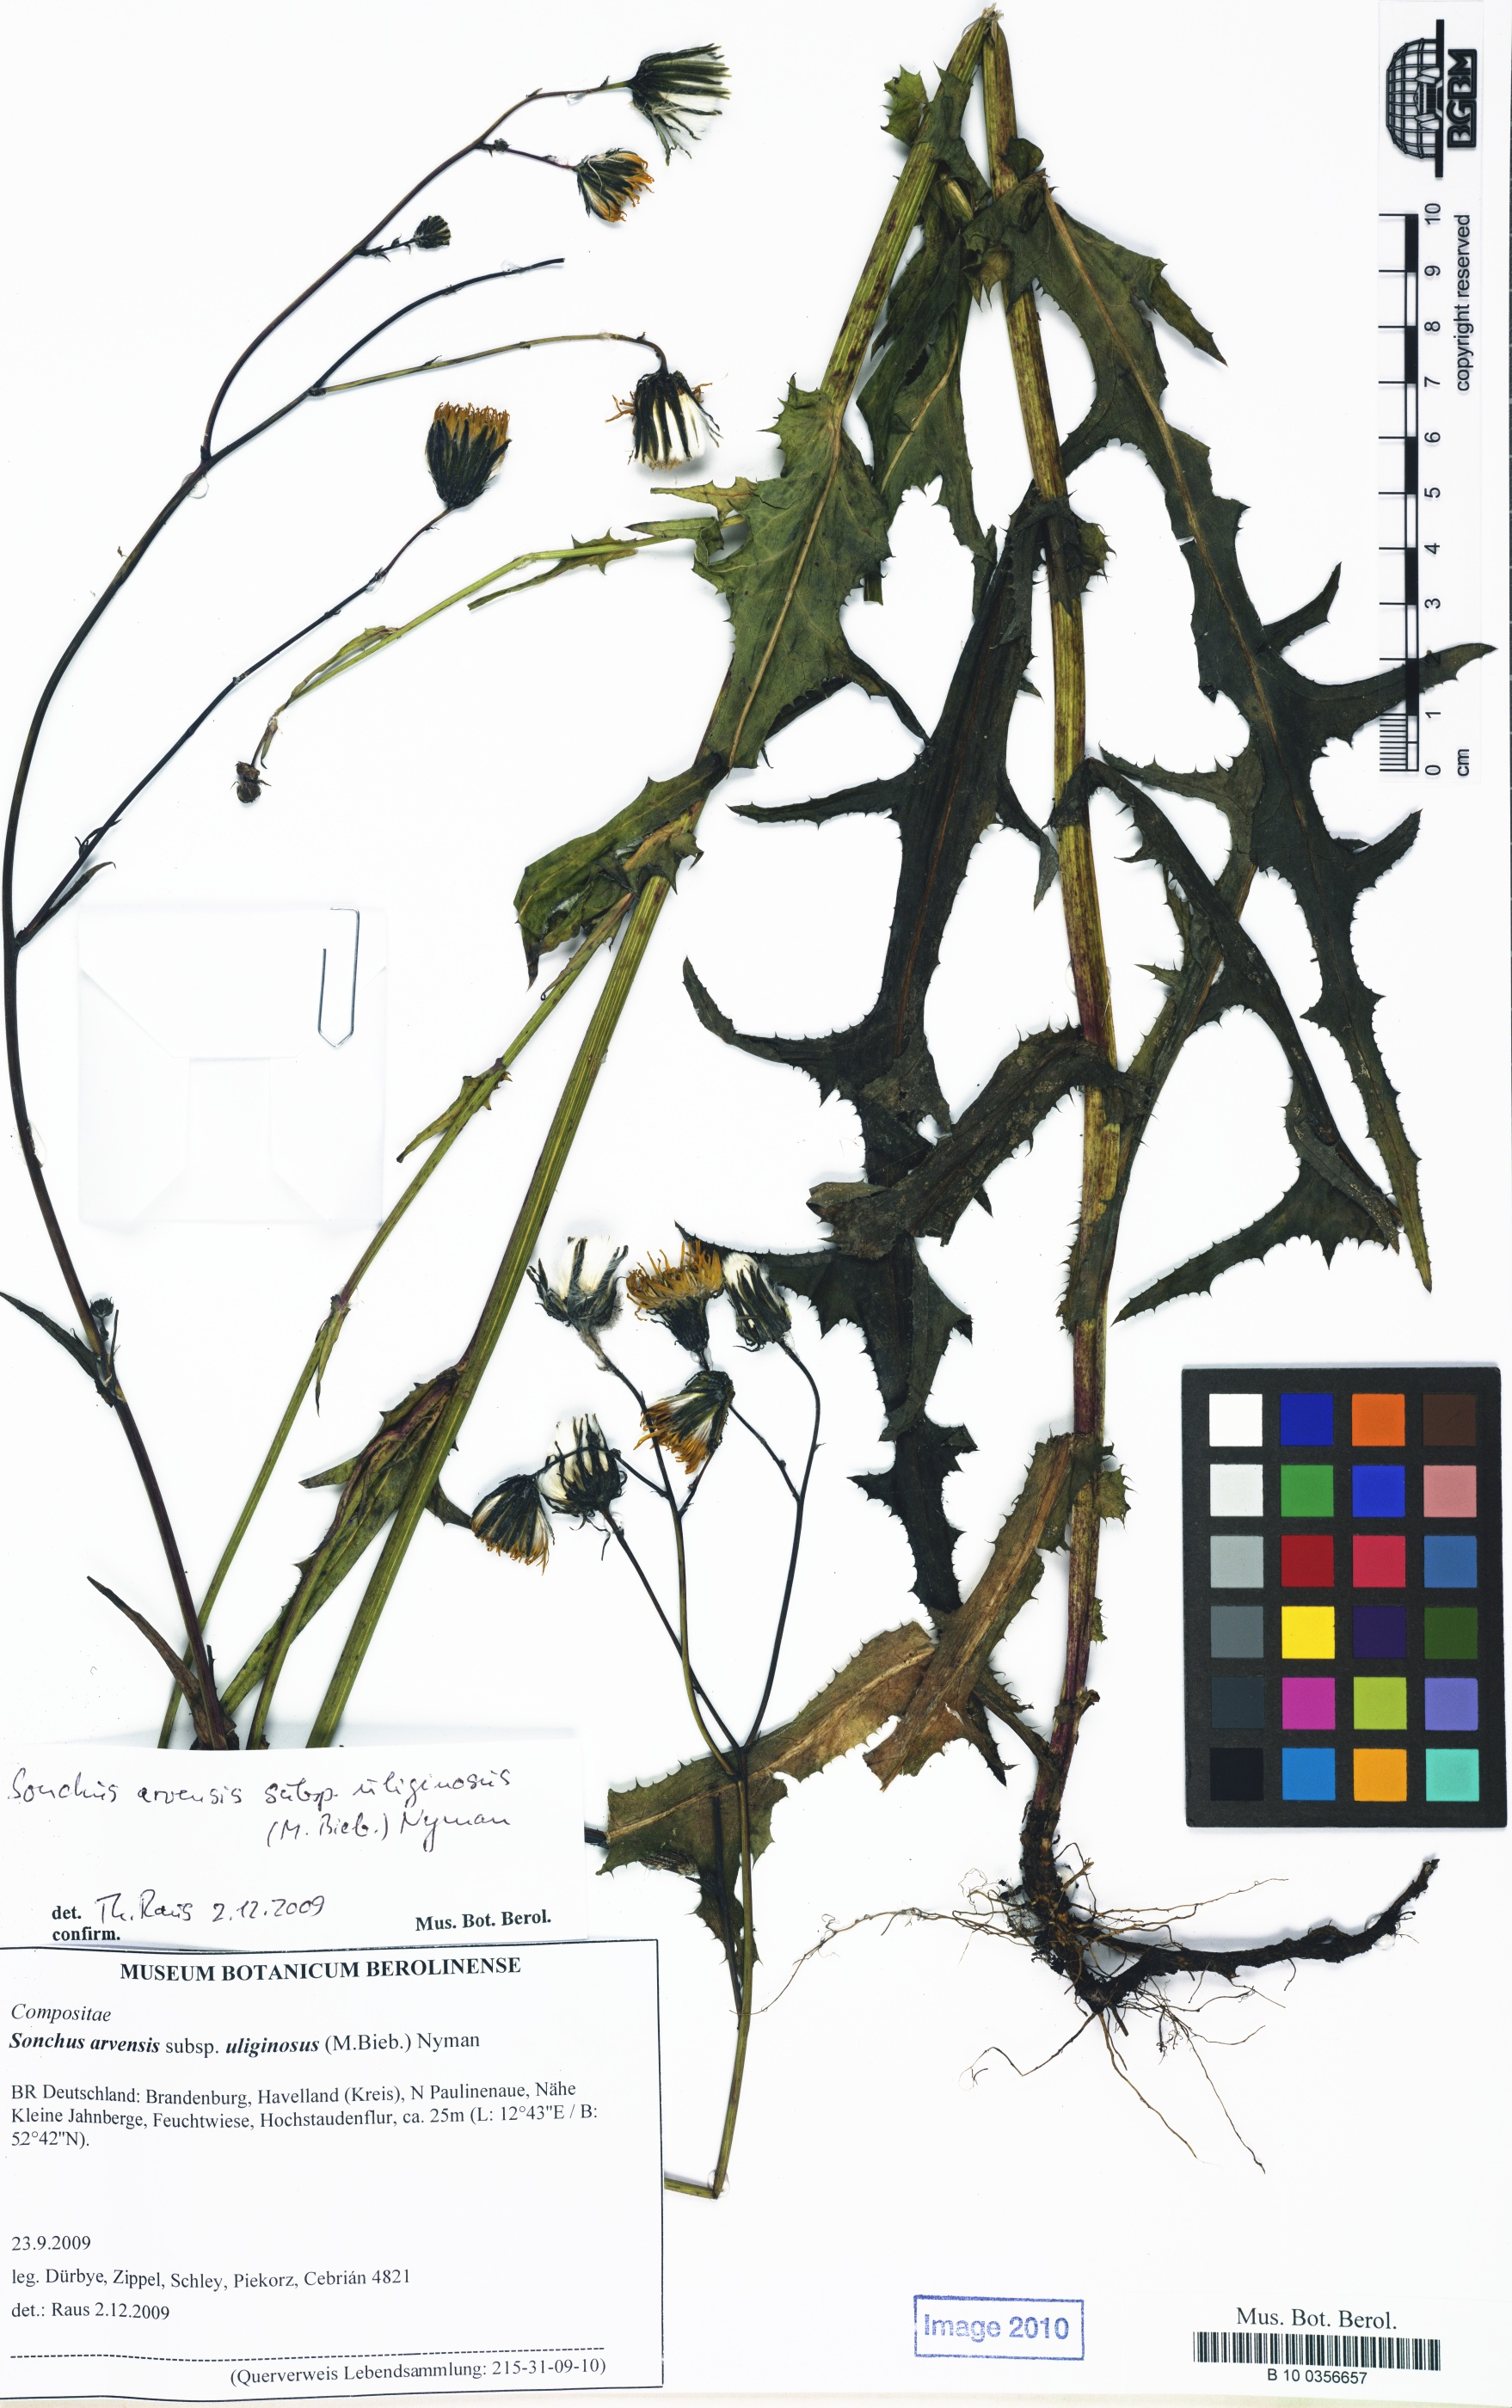 © Botanic Garden and Botanical Museum Berlin-Dahlem, Freie Universität Berlin<br>by Röpert, D. (Ed.) 2000- (continuously updated): Digital specimen images at the Herbarium Berolinense. - Published on the Internet http://ww2.bgbm.org/herbarium/ (Barcode: B 10 0356658 / ImageId: 316440) [accessed 26-Nov-11].<br>